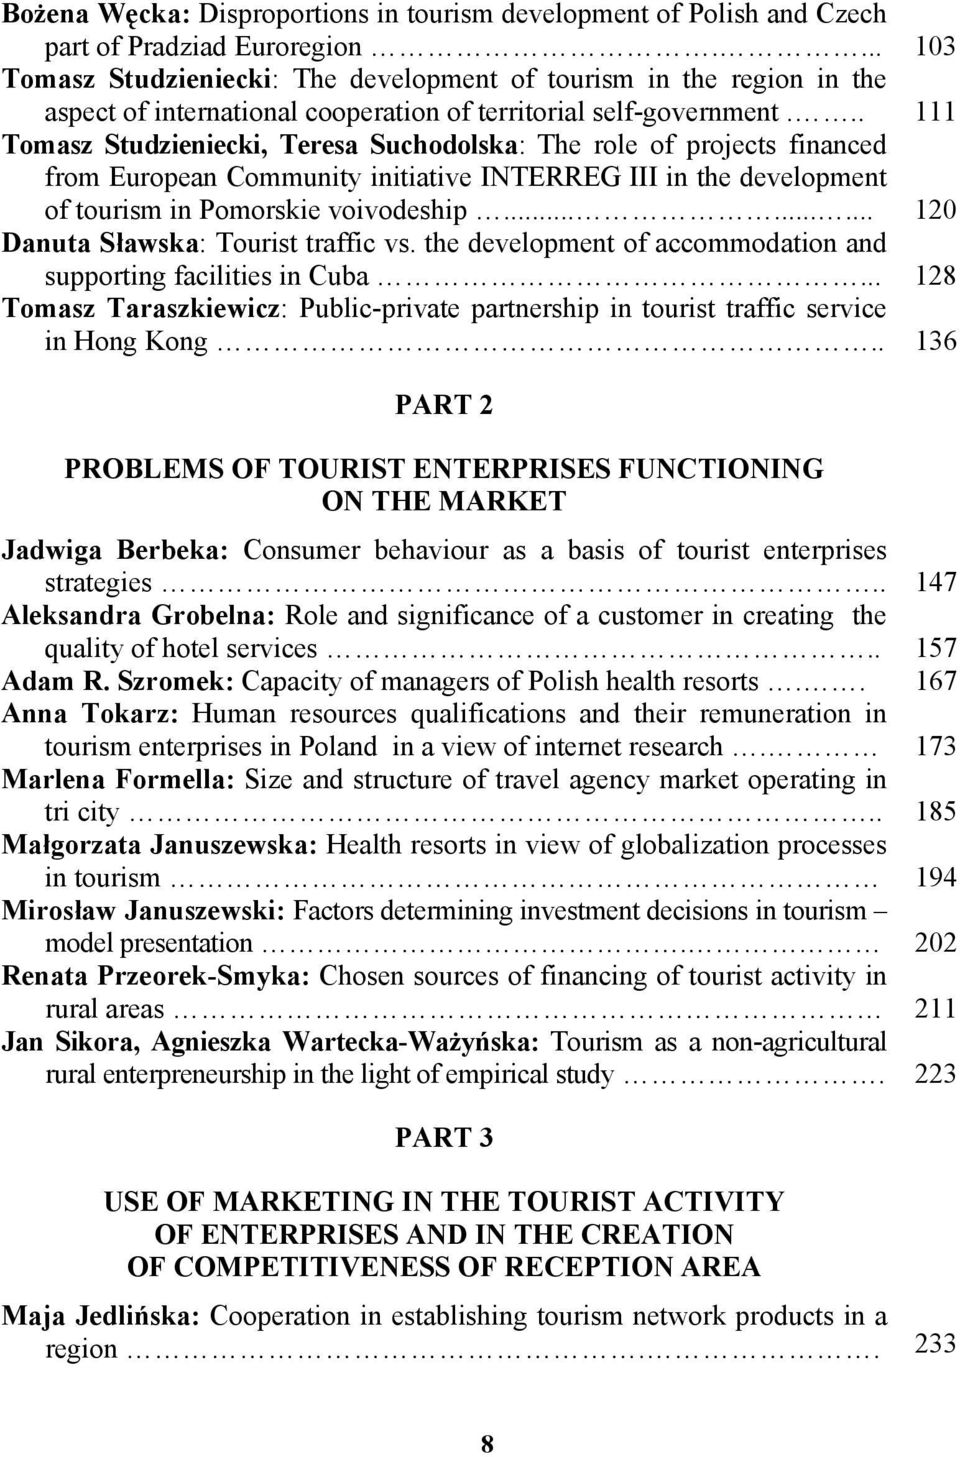 .. 111 Tomasz Studzieniecki, Teresa Suchodolska: The role of projects financed from European Community initiative INTERREG III in the development of tourism in Pomorskie voivodeship.